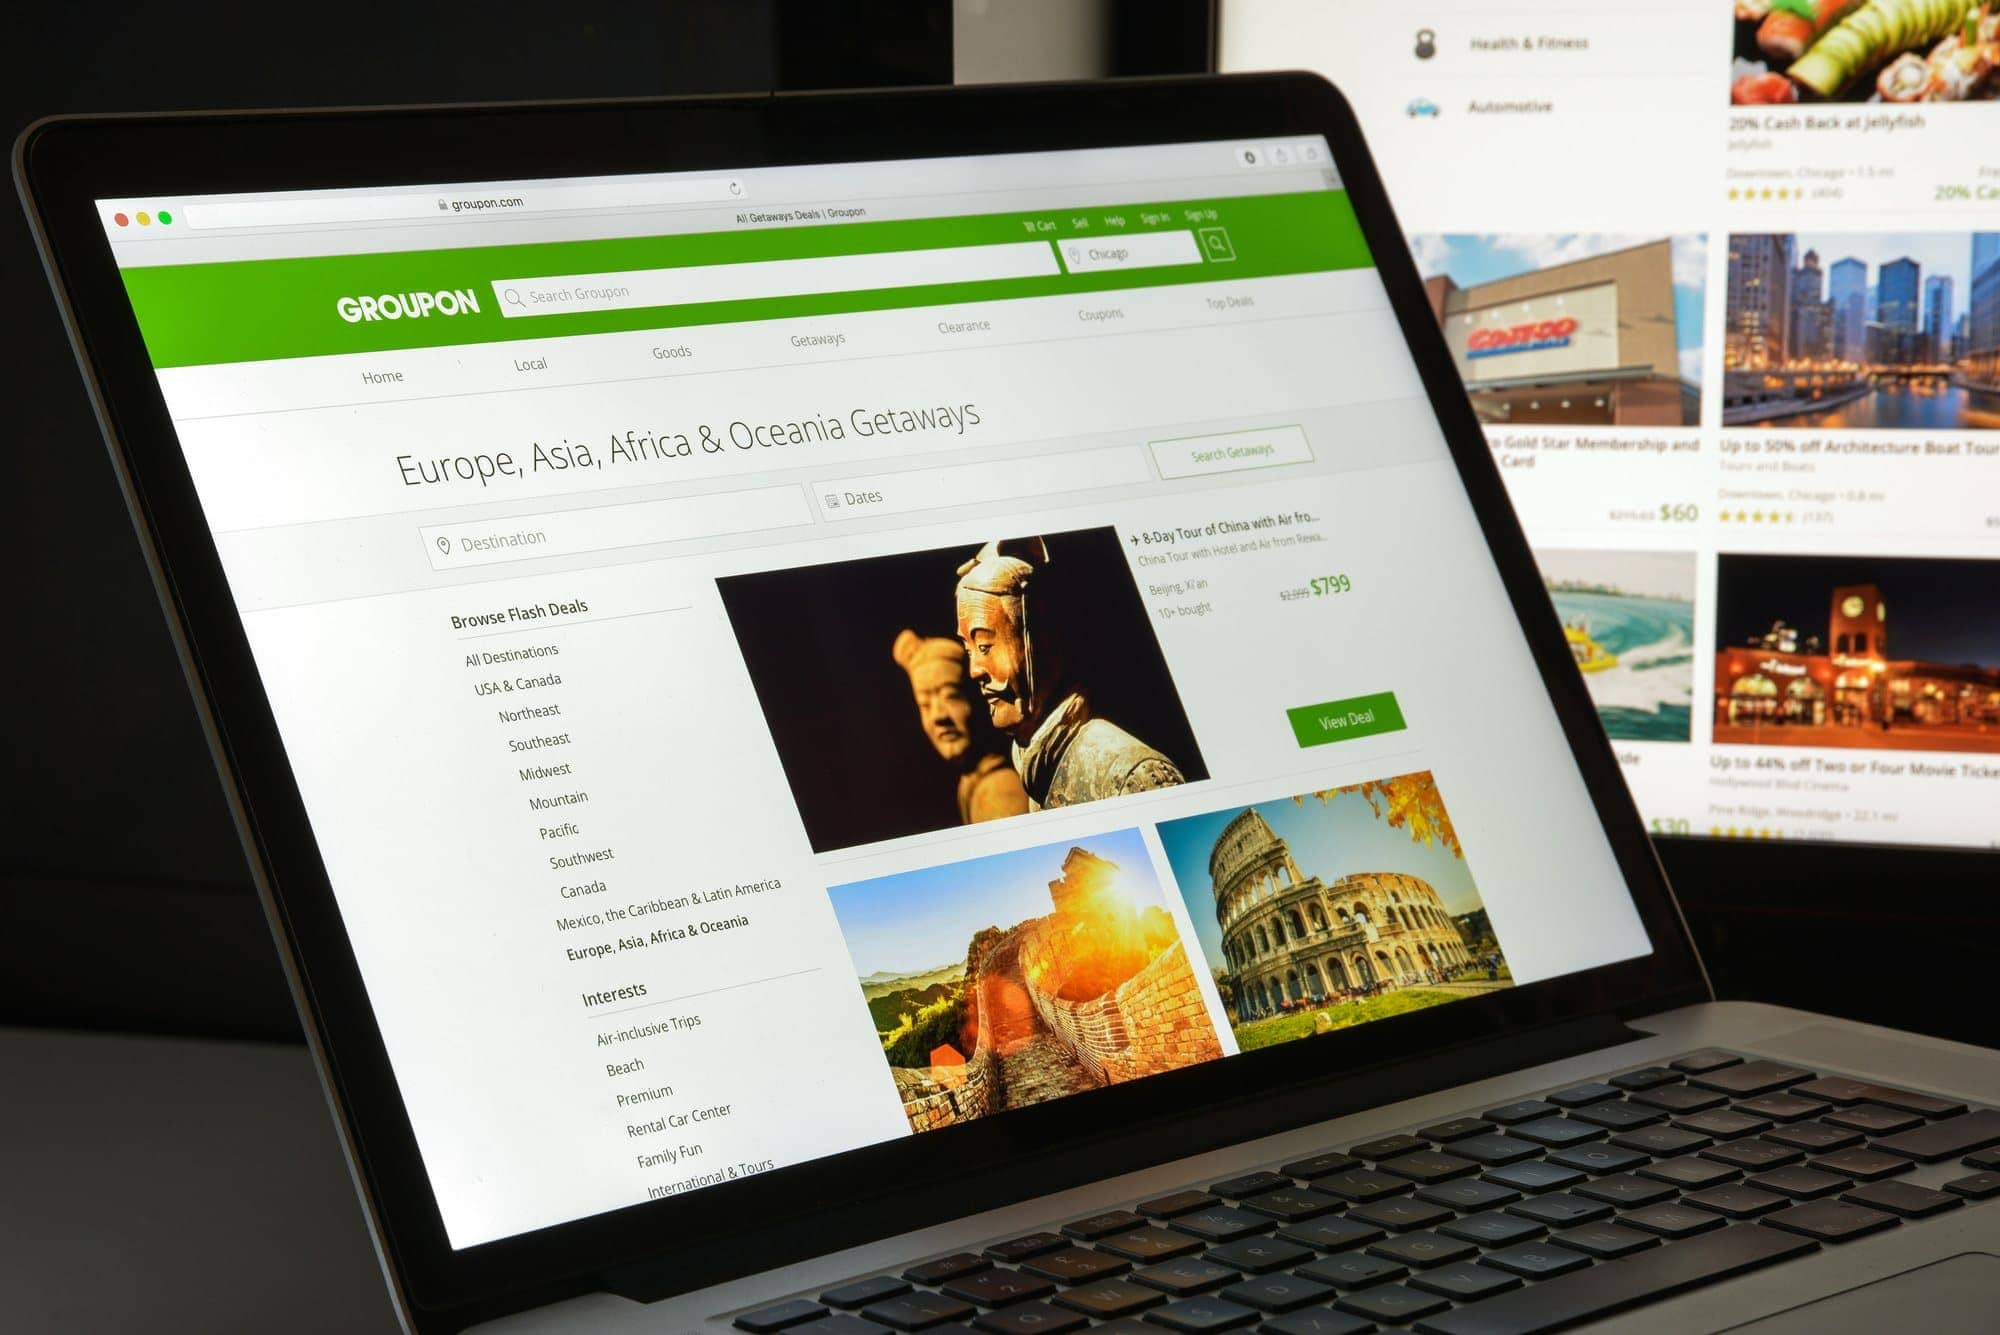 Do a search for Groupons in your destination to save money during your travels